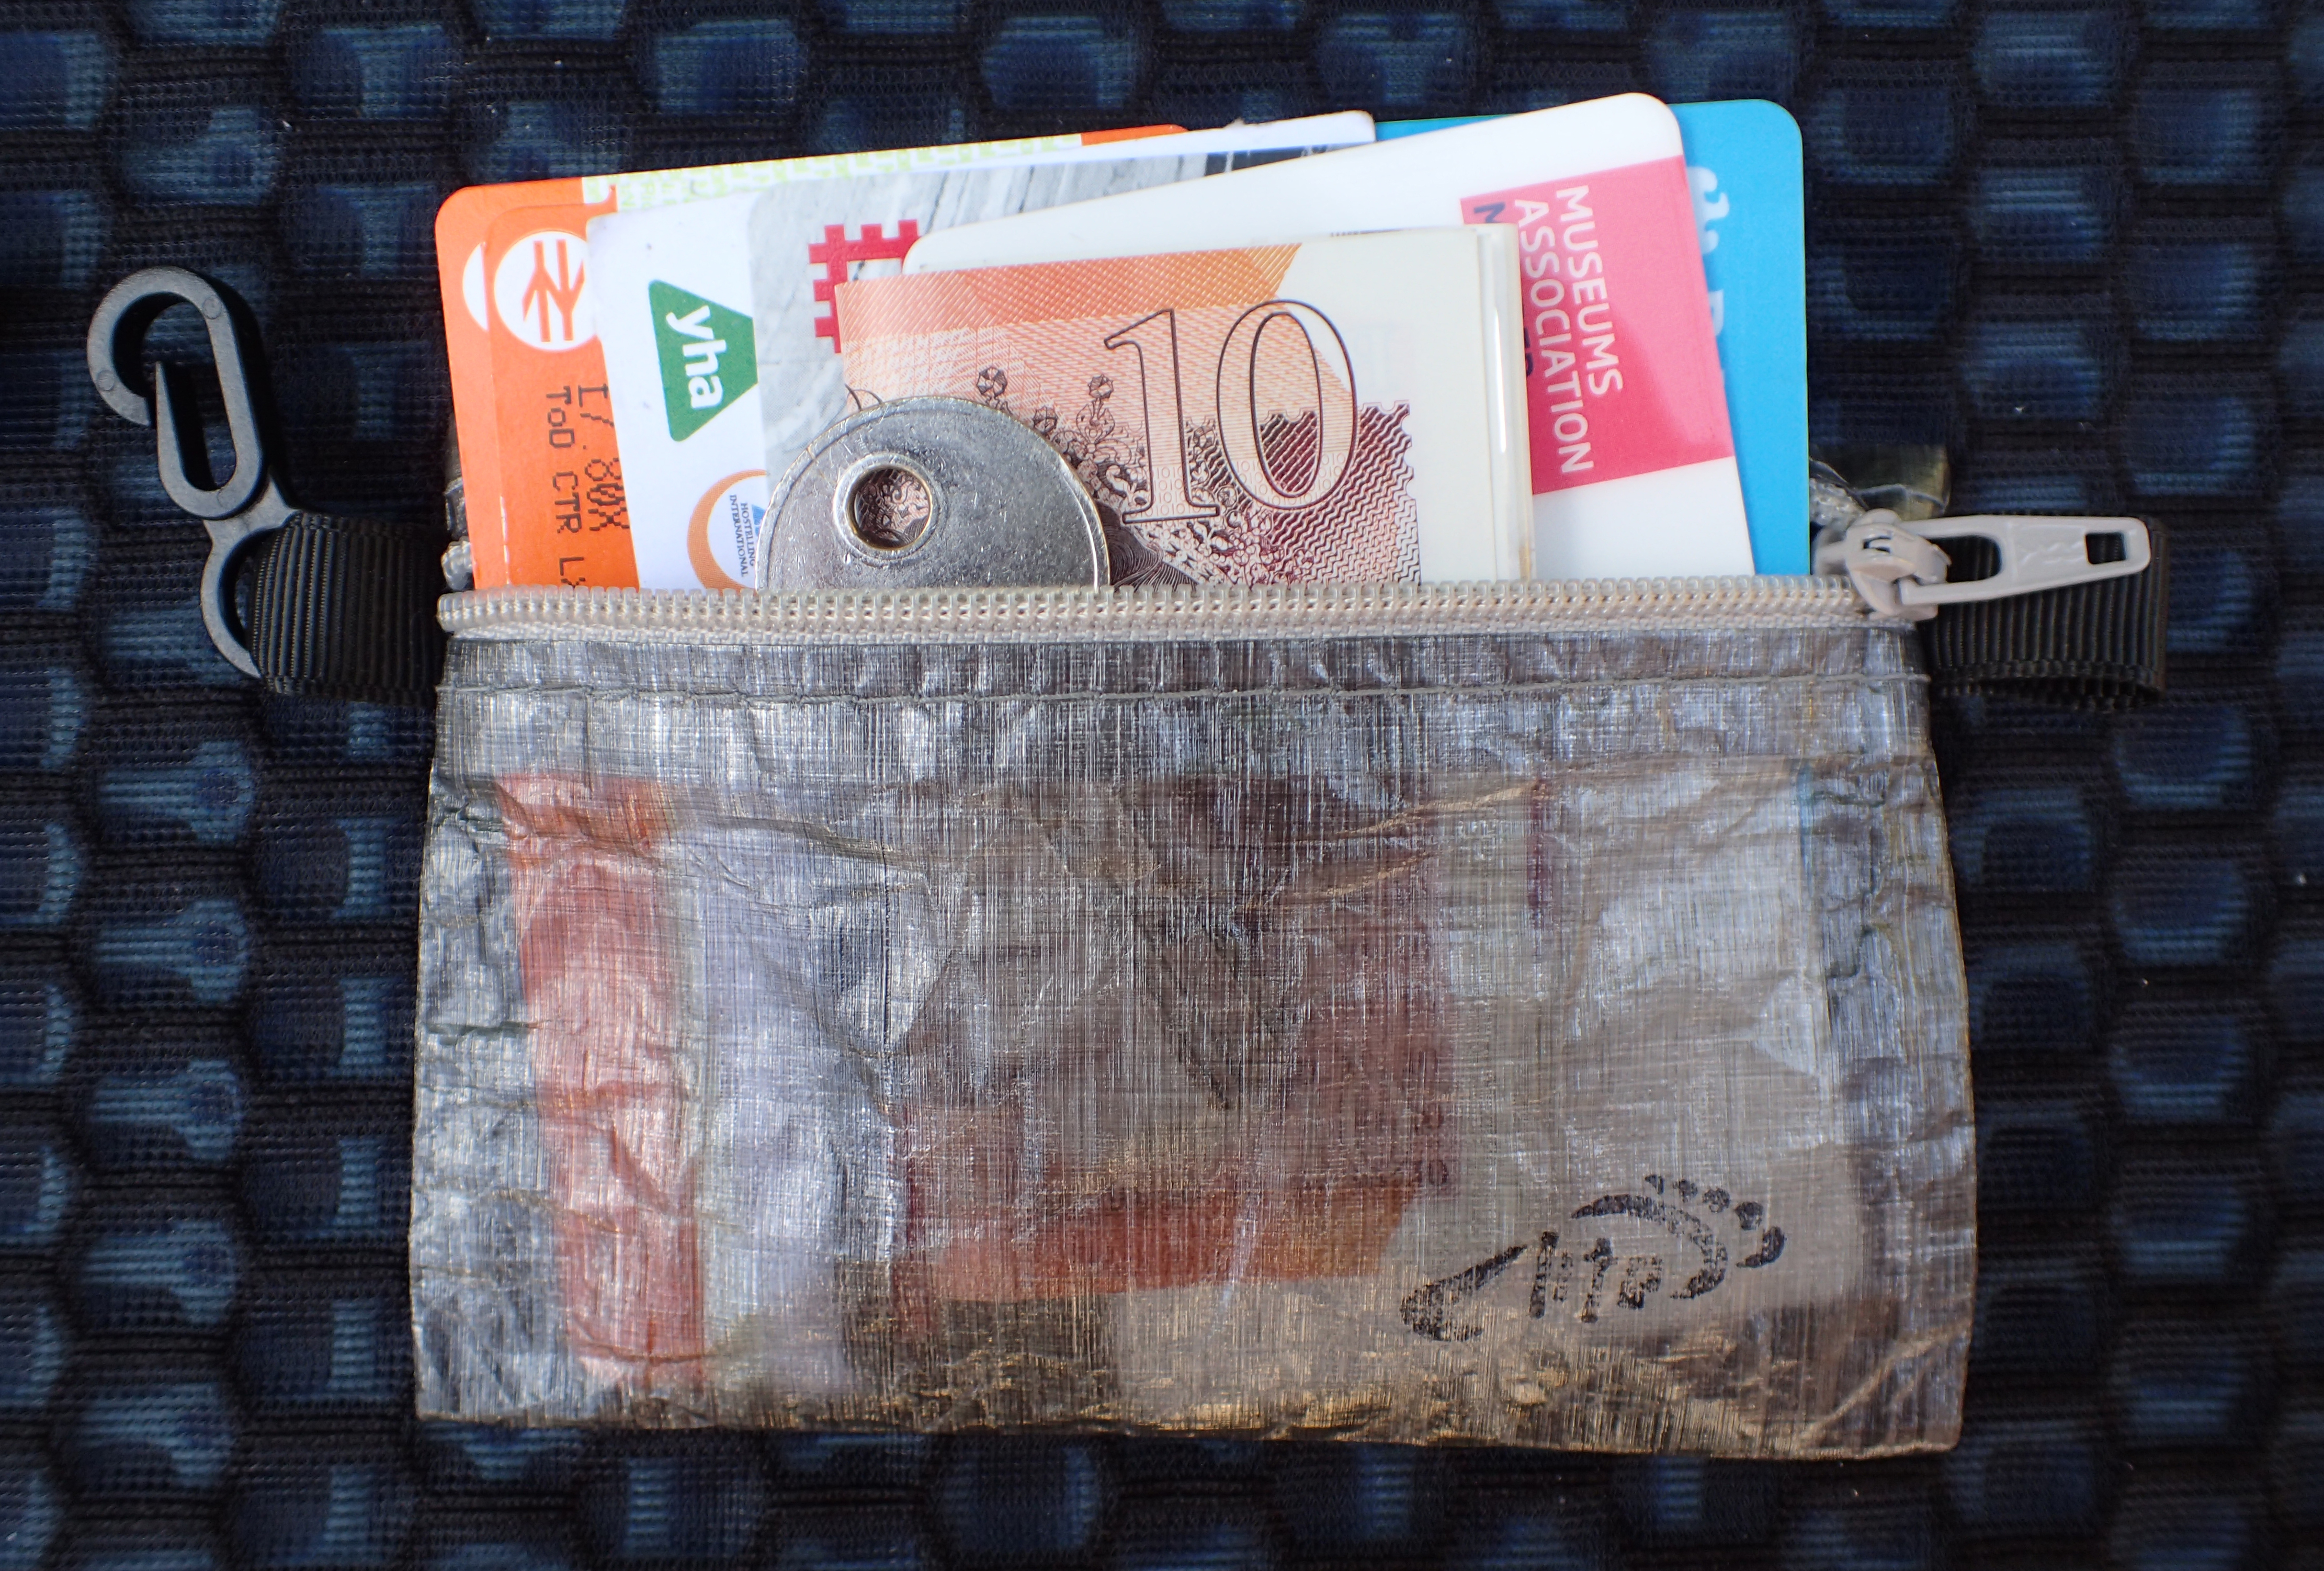 Wallet and contents